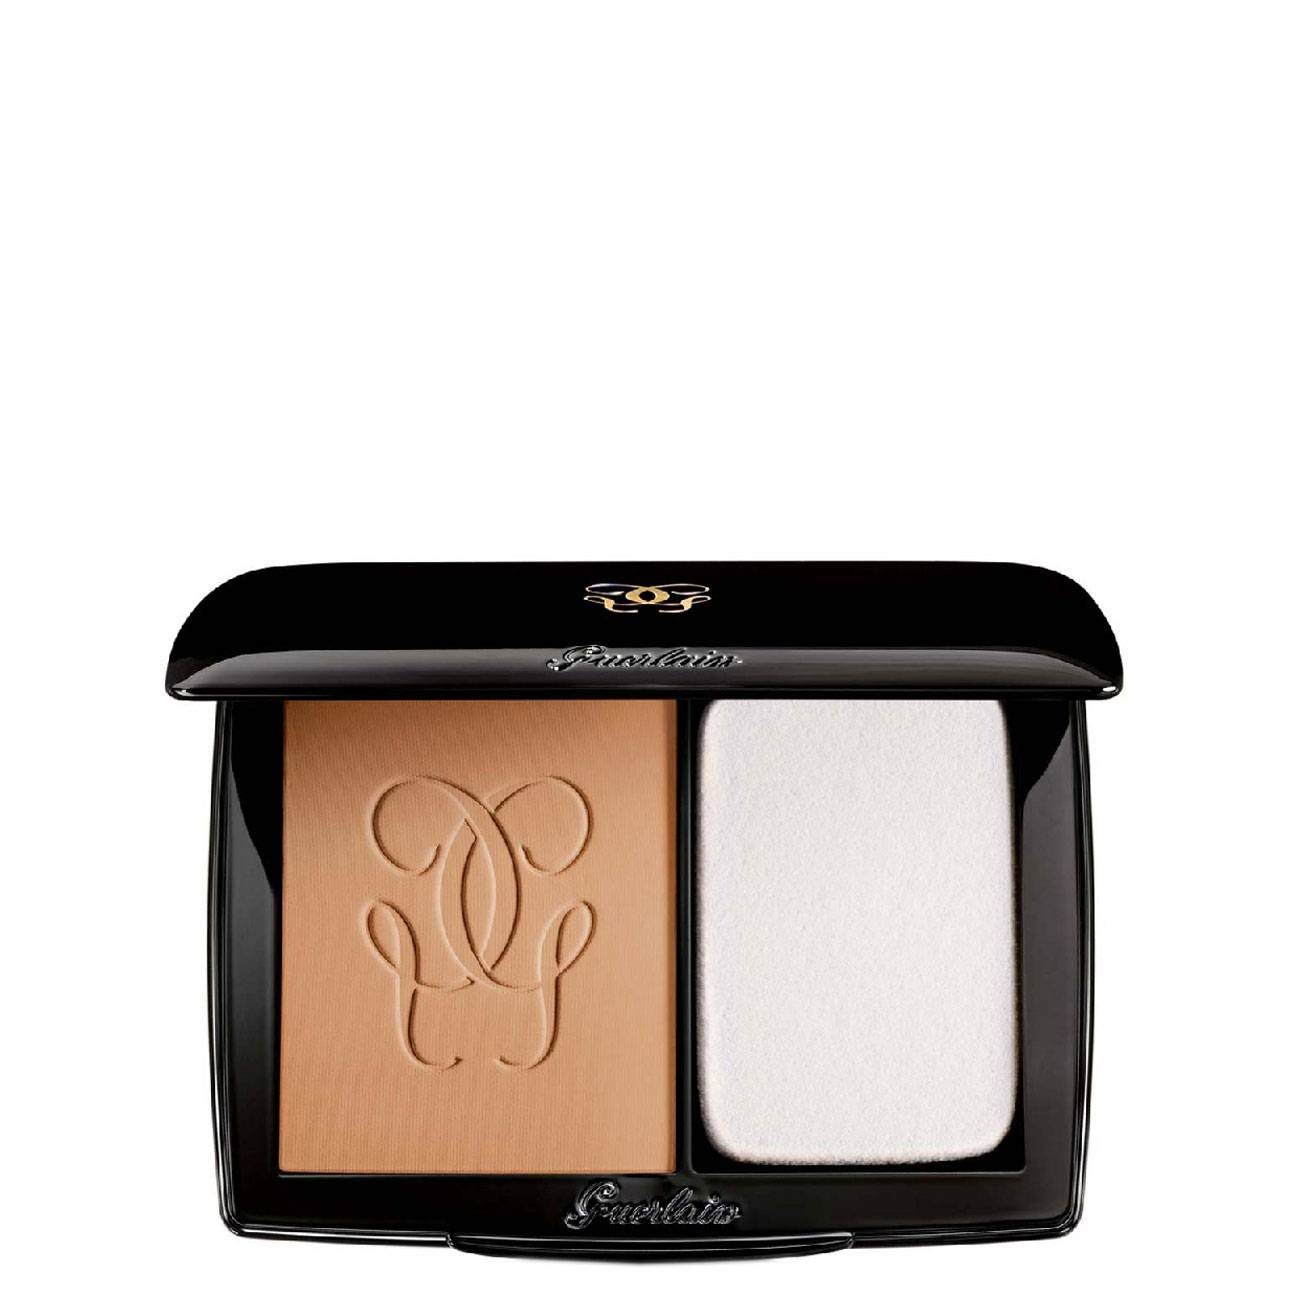 Lingerie De Peau Powder Foundation 10gr